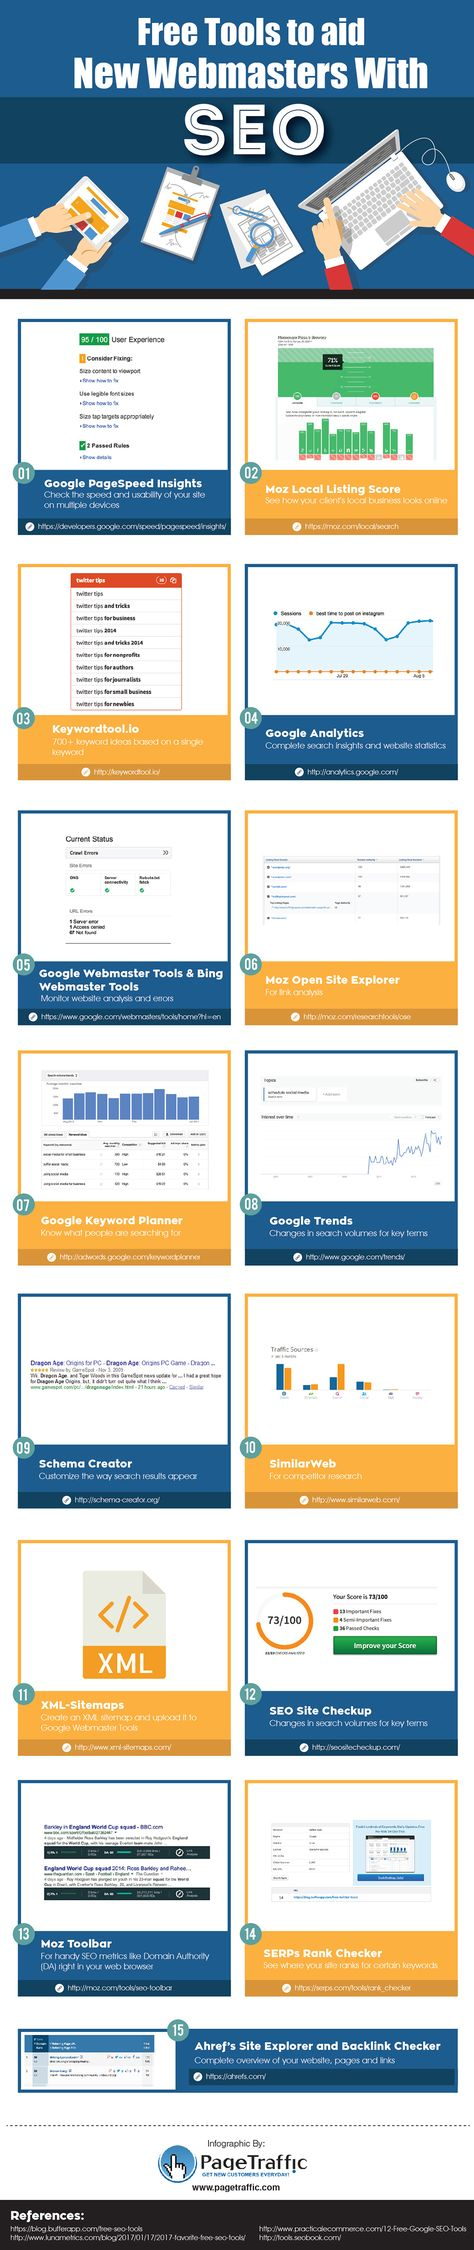 15 Free SEO Tools That Can Help Your Website Rank Higher on Google [Infographic]